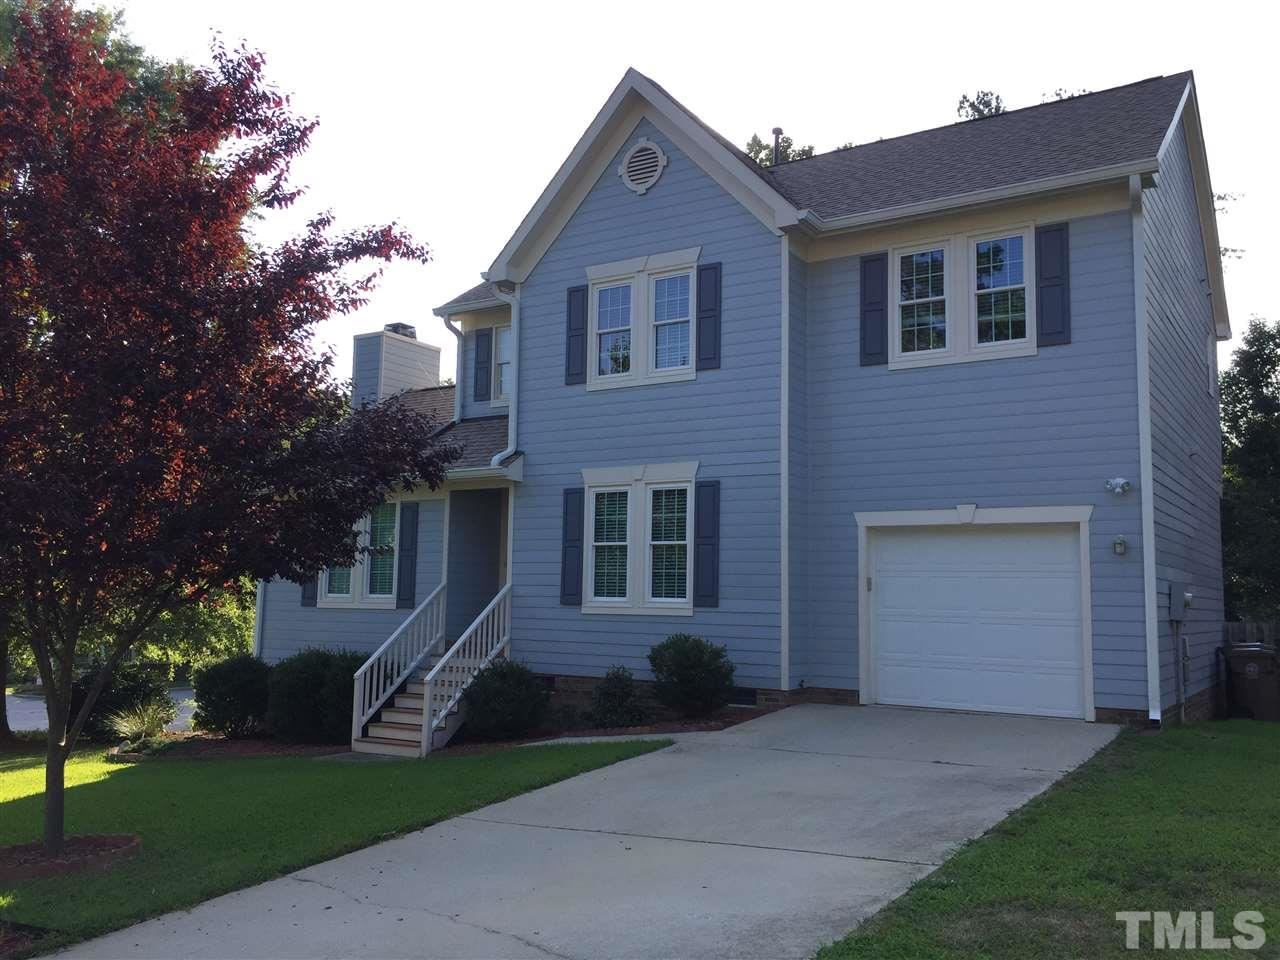 104 Maple Hill Drive, Cary, NC 27519-9282 - MLS#: 2329133